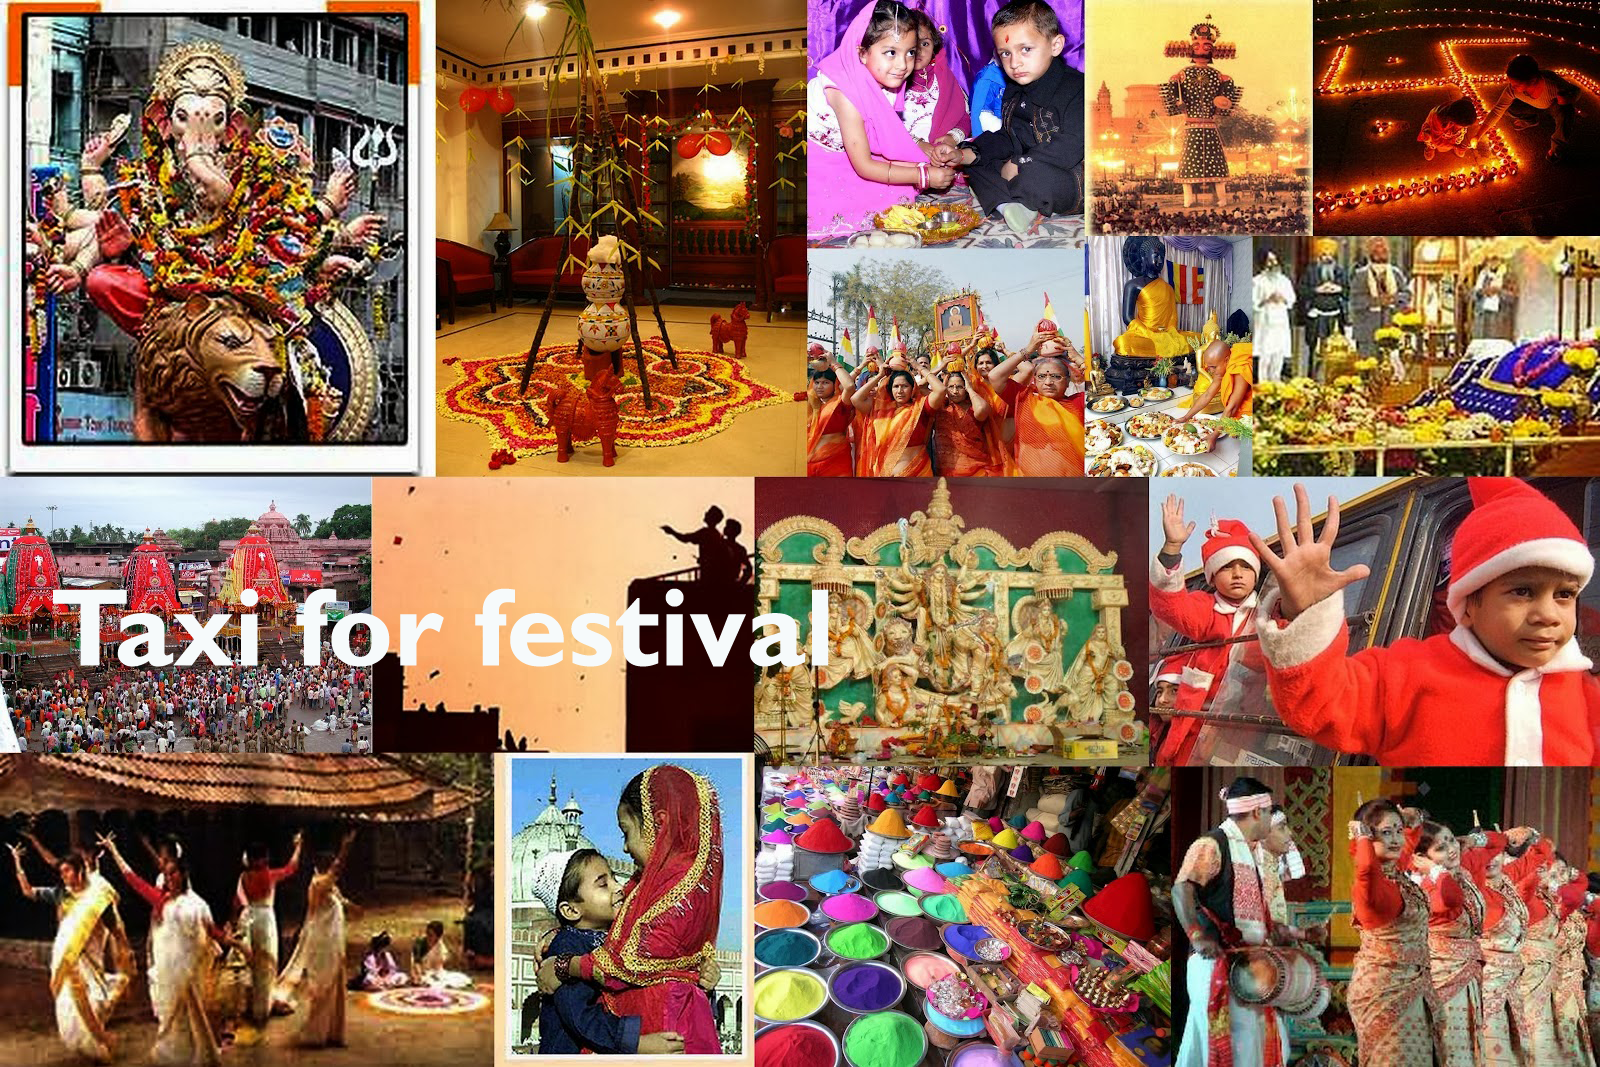 Best Taxi services for festivals in chandigarh